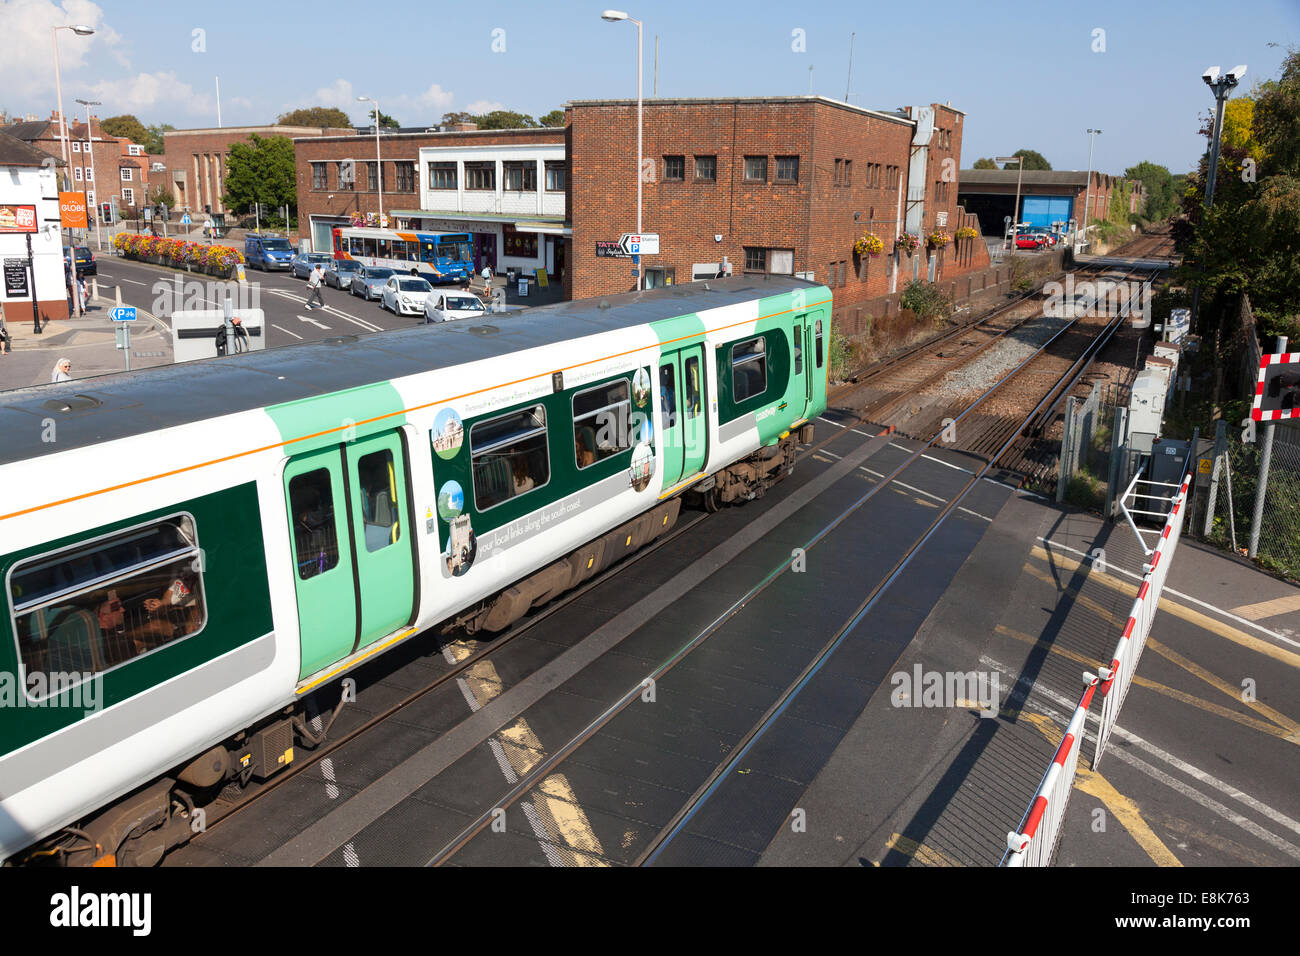 Southern Railway train passing over level crossing, Chichester, West Sussex Stock Photo